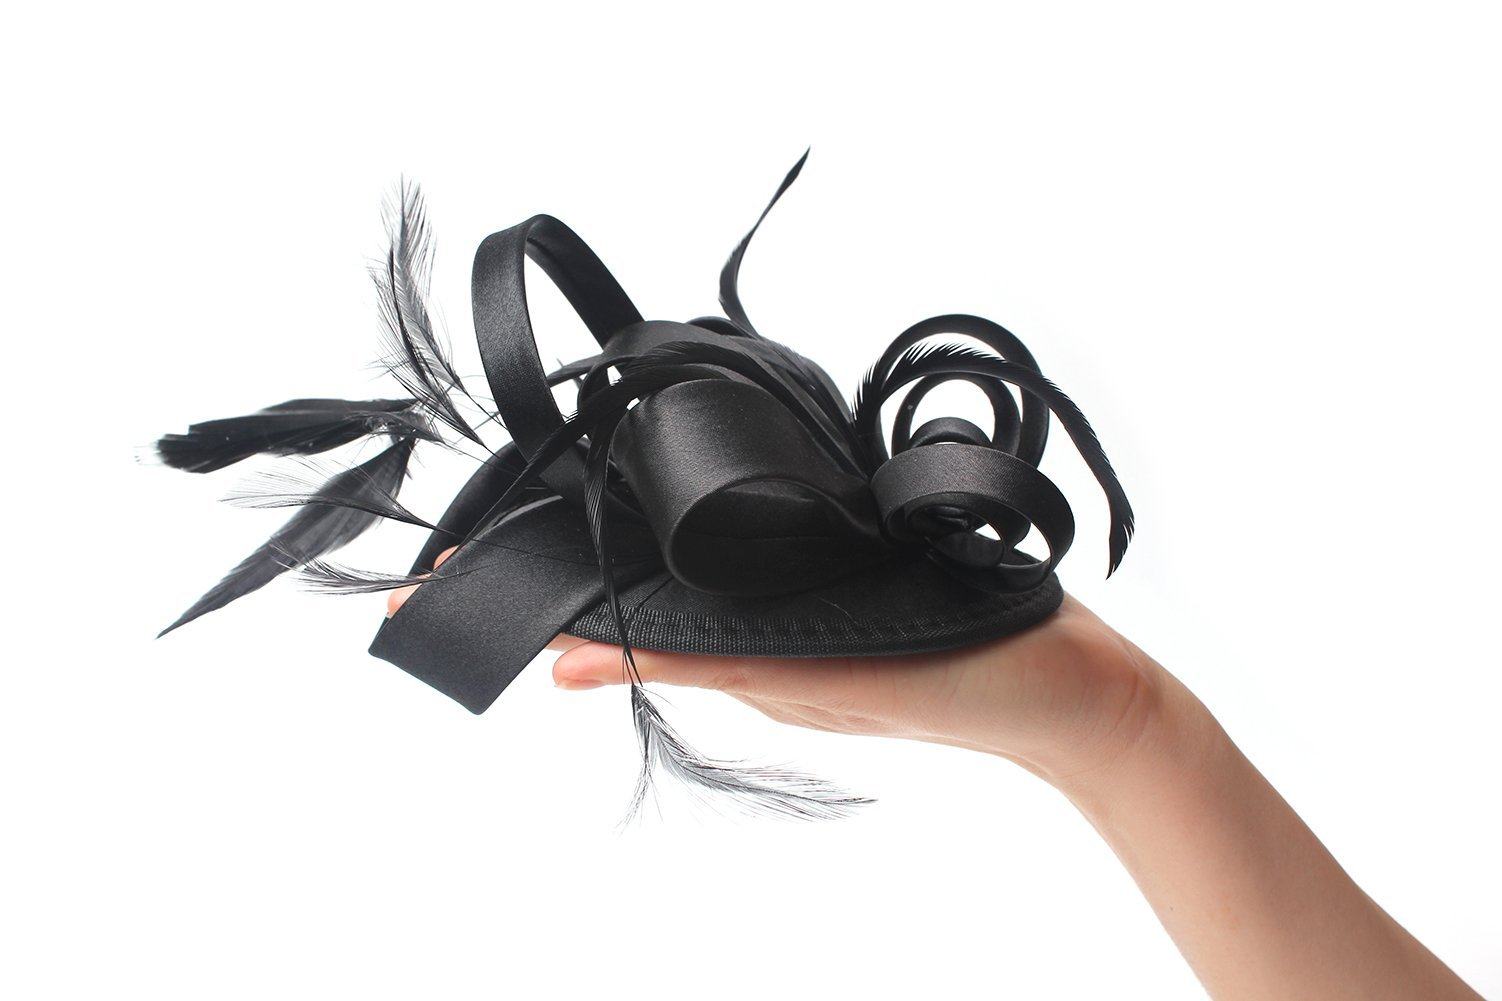 Felizhouse Fascinator Hats for Women Ladies Feather Cocktail Party Hats Bridal Headpieces Kentucky Derby Ascot Fascinator Headband (Black) by Felizhouse (Image #5)